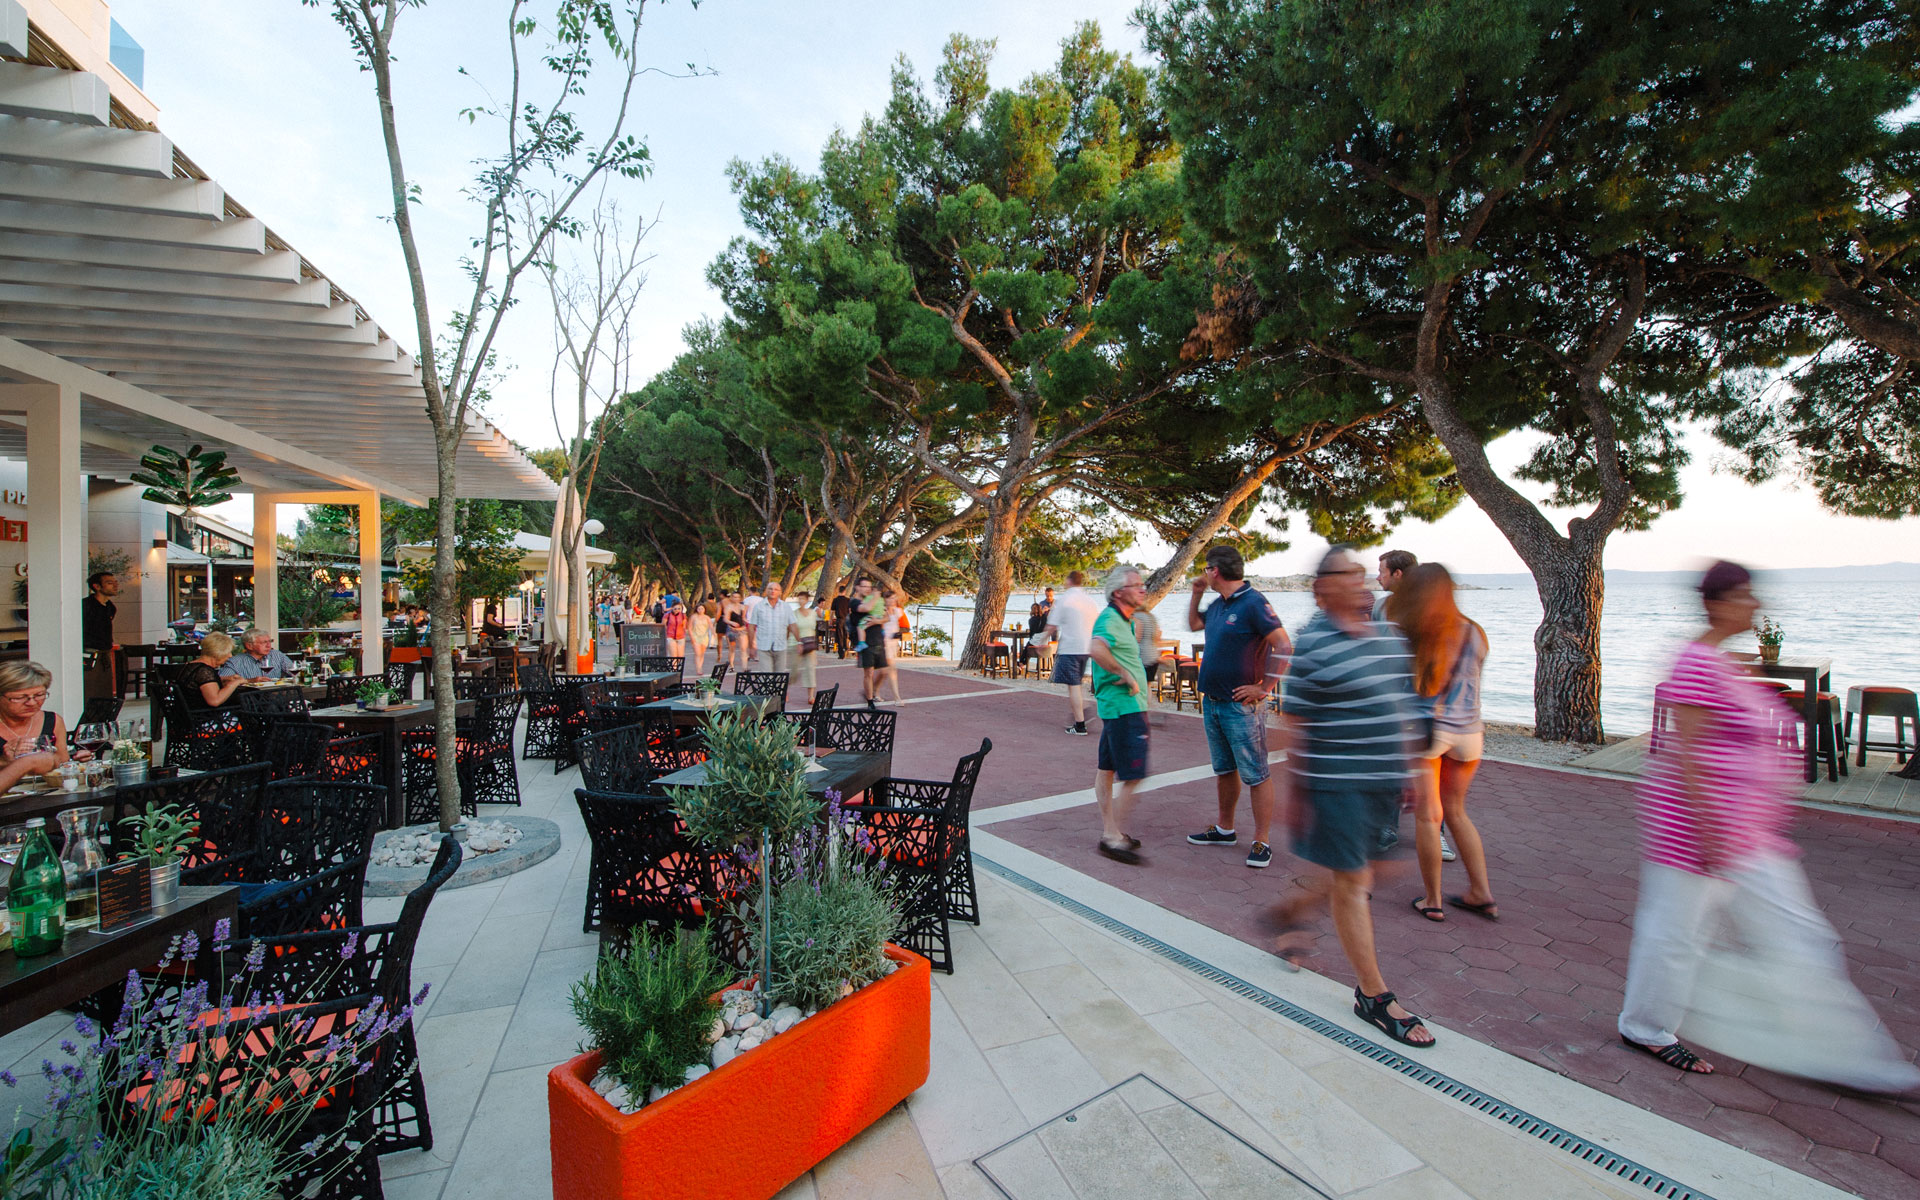 City Beach Makarska